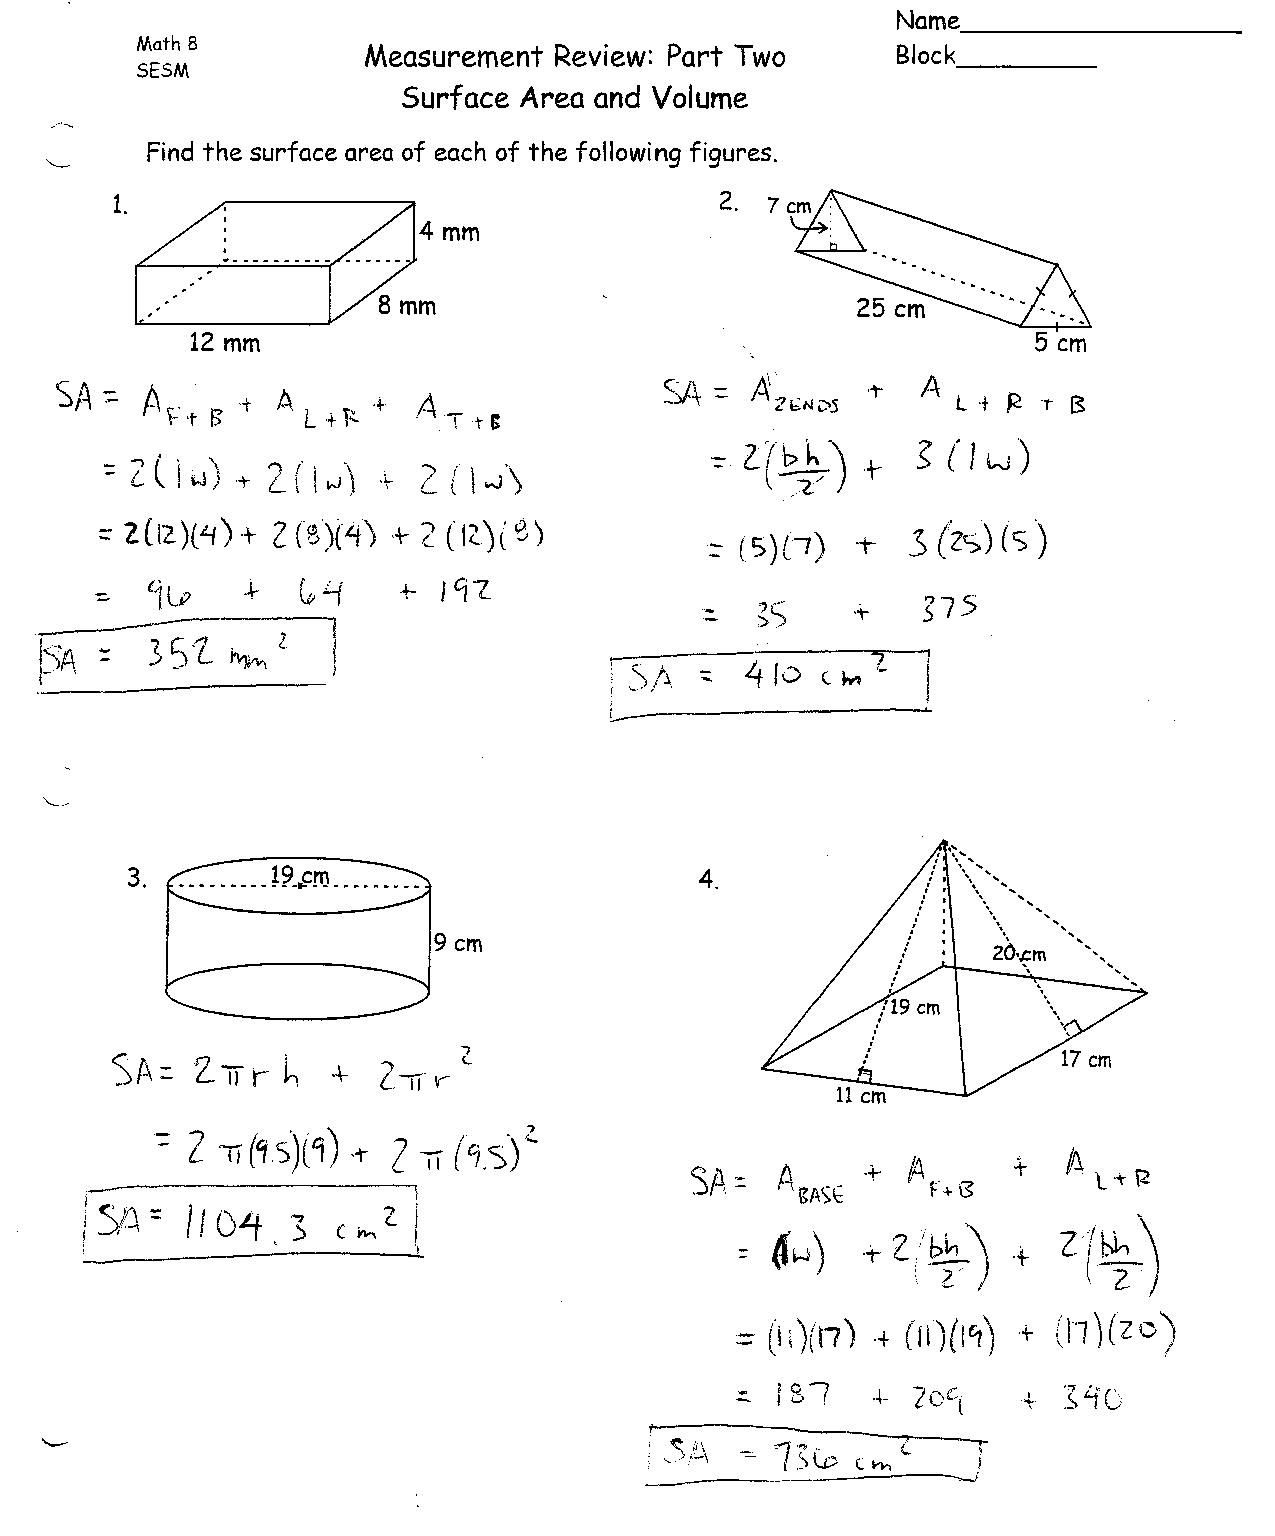 Surface Area And Volume Worksheets Grade 10   db excel.com